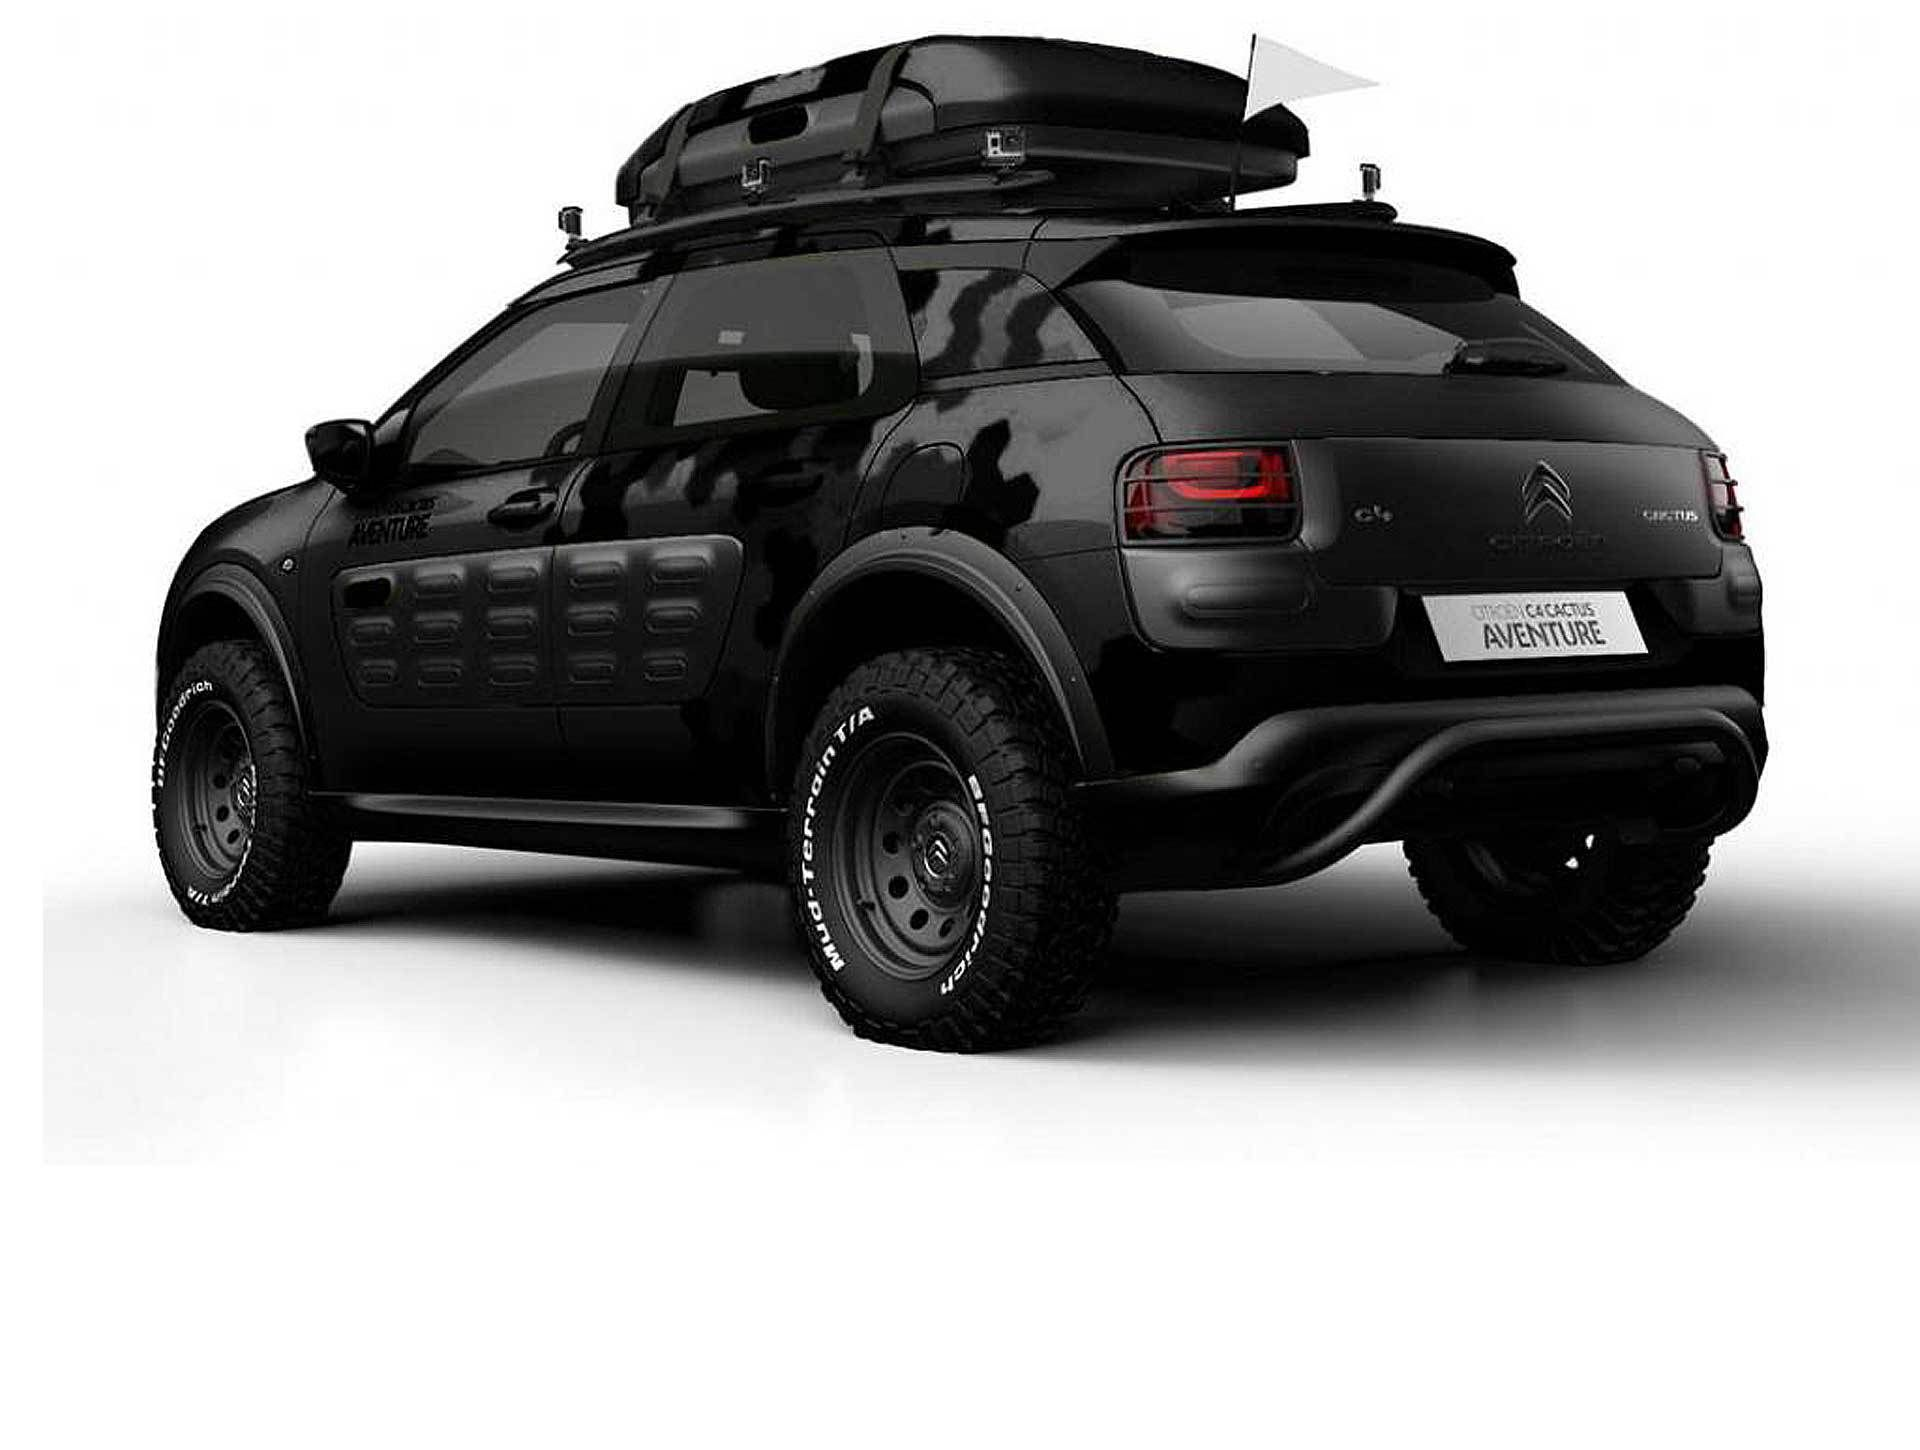 v deo citroen cactus fiyat s r tan t m off road nceleme ve test g r nt leri. Black Bedroom Furniture Sets. Home Design Ideas